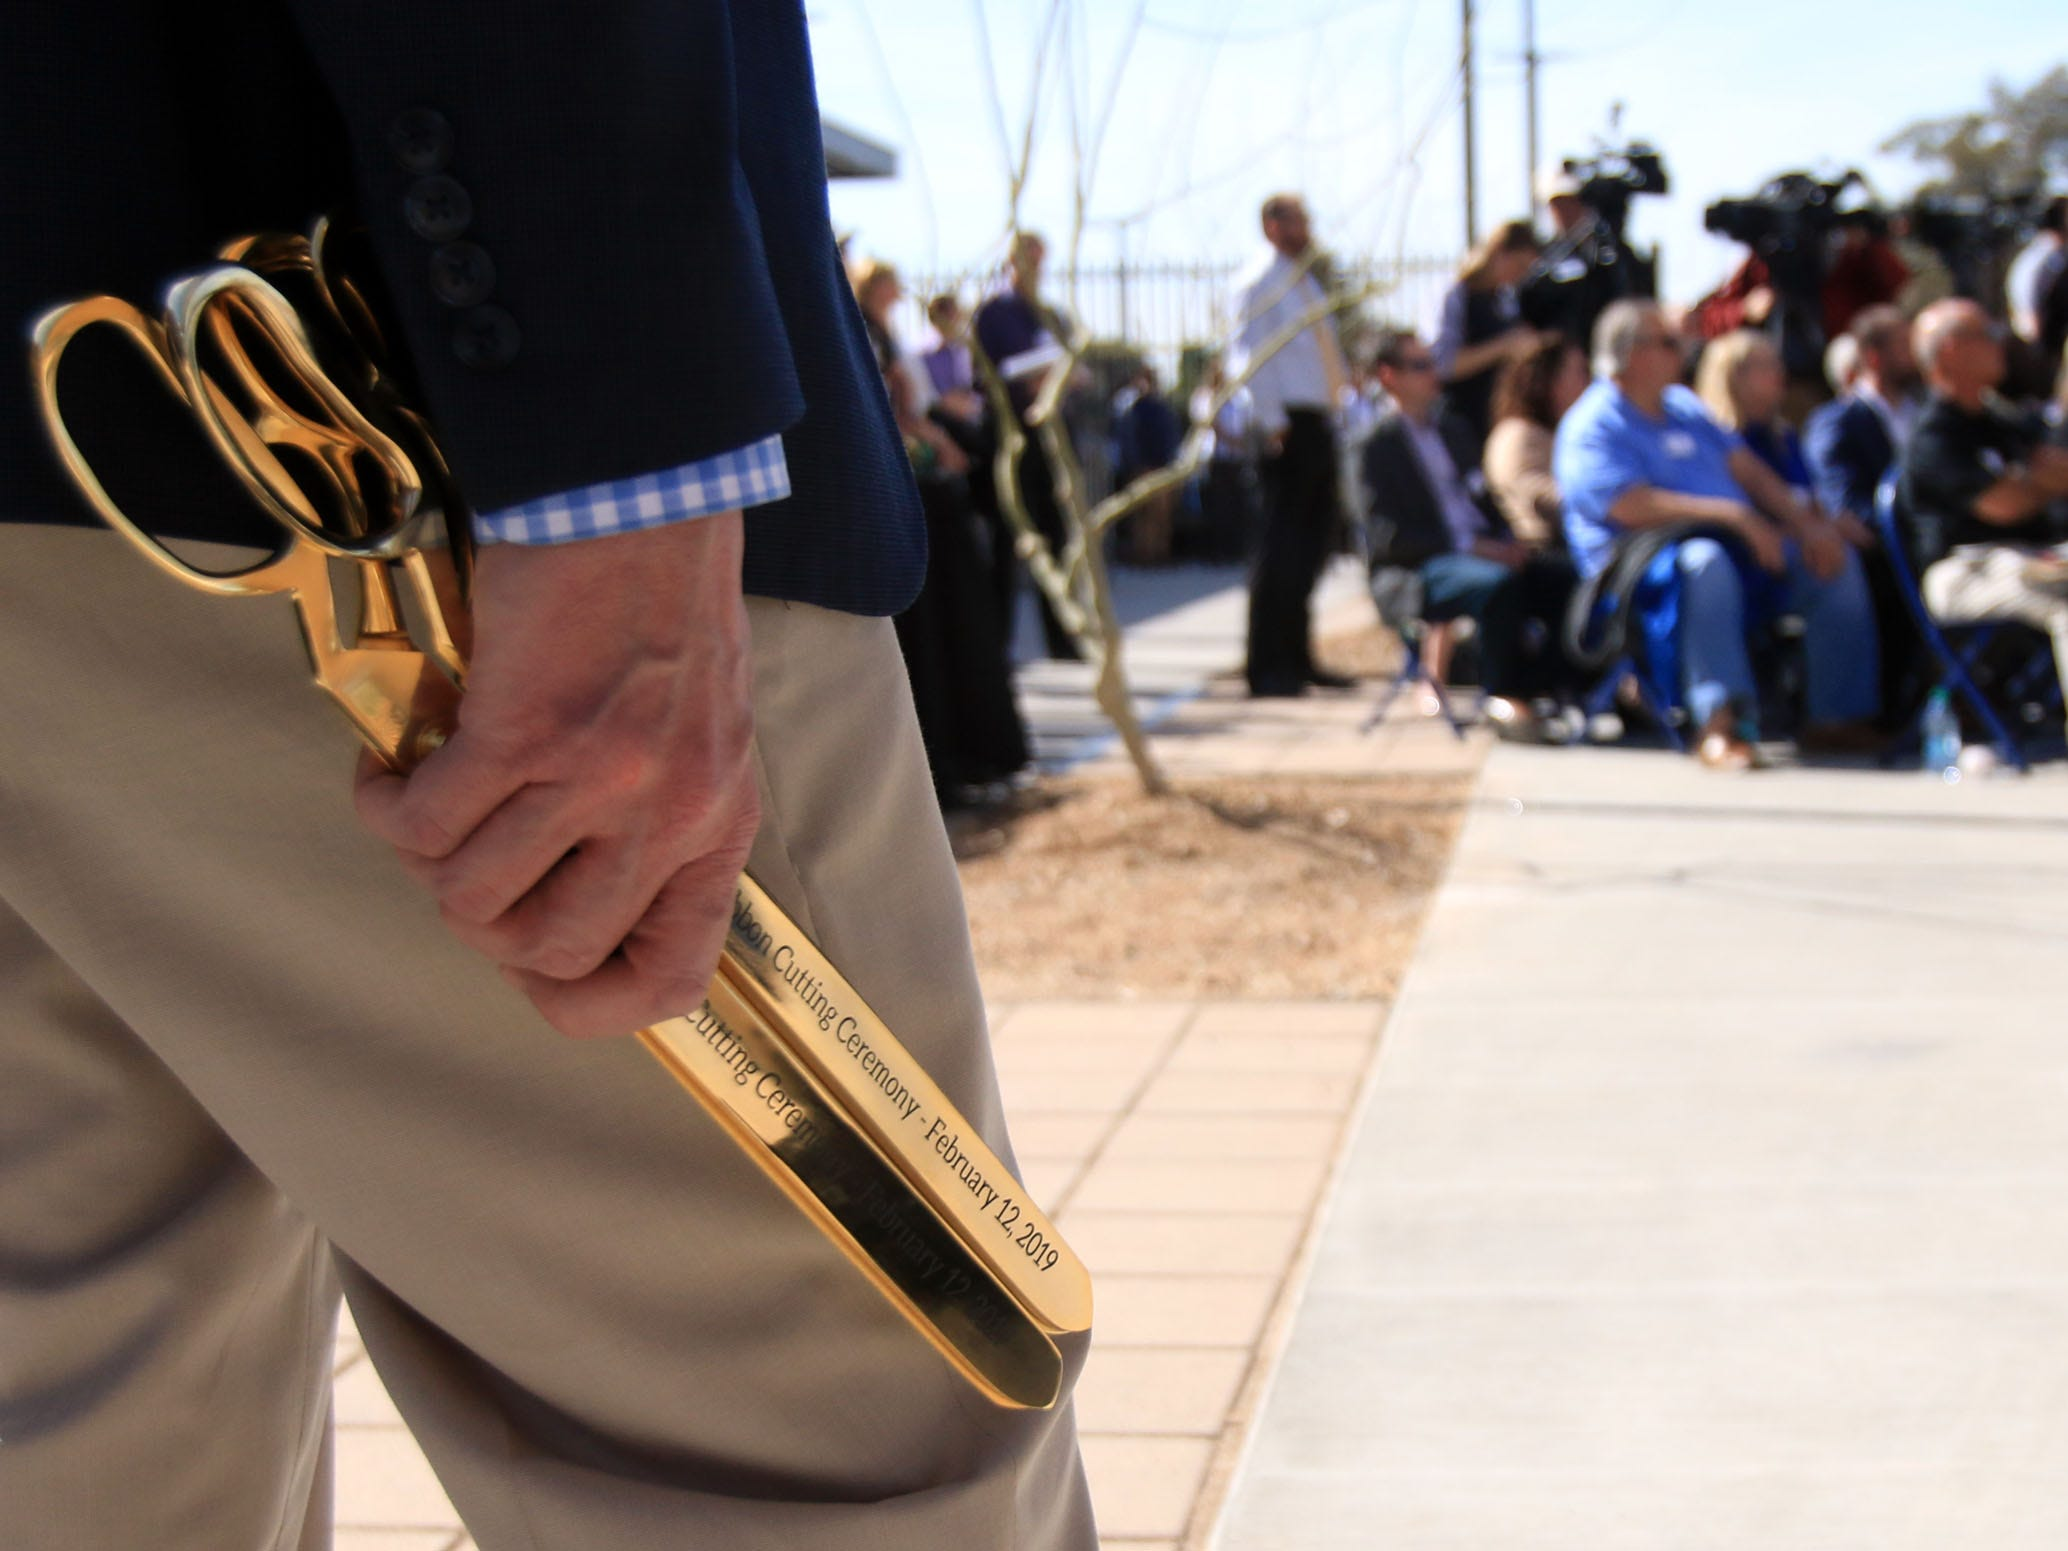 Tyler Barnes holds scissors that are used in the  a ribbon-cutting ceremony to unveil the new Milwaukee Brewers spring training facility.